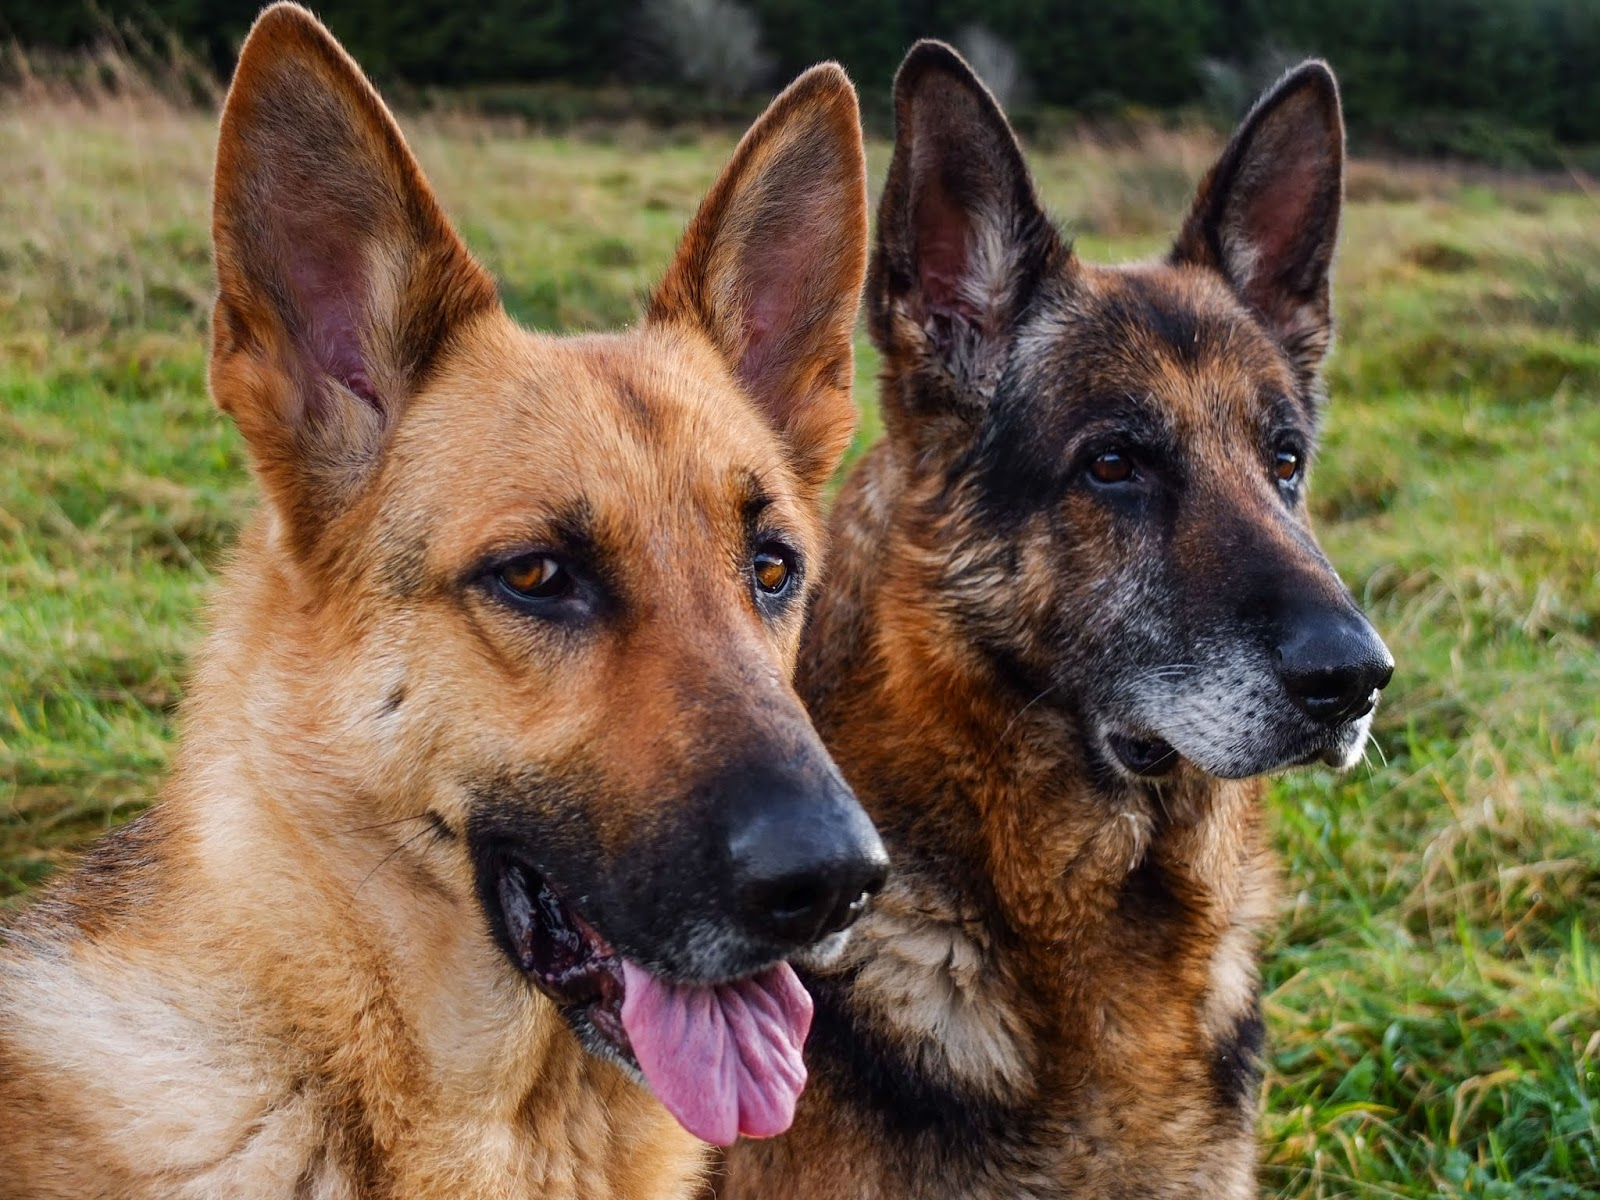 A pair of German Shepherds sitting on a mountain side at sunset.